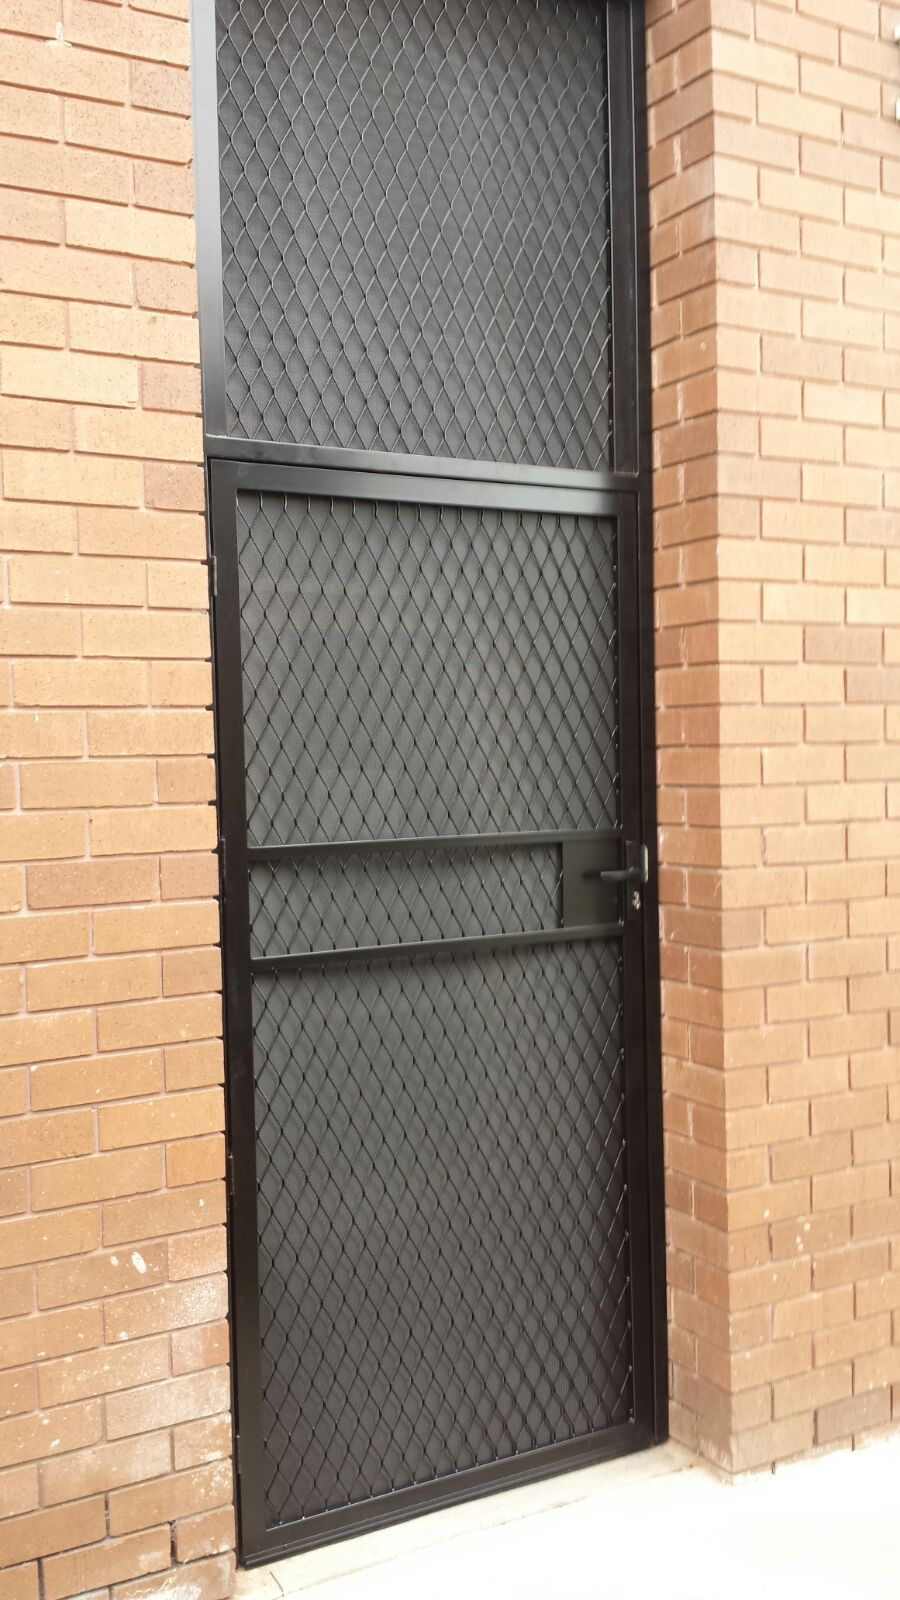 Steel Security Door Enclosure With One Way Vision Mesh Installed In Mordialloc In 2020 Steel Doors Steel Security Doors Grill Door Design